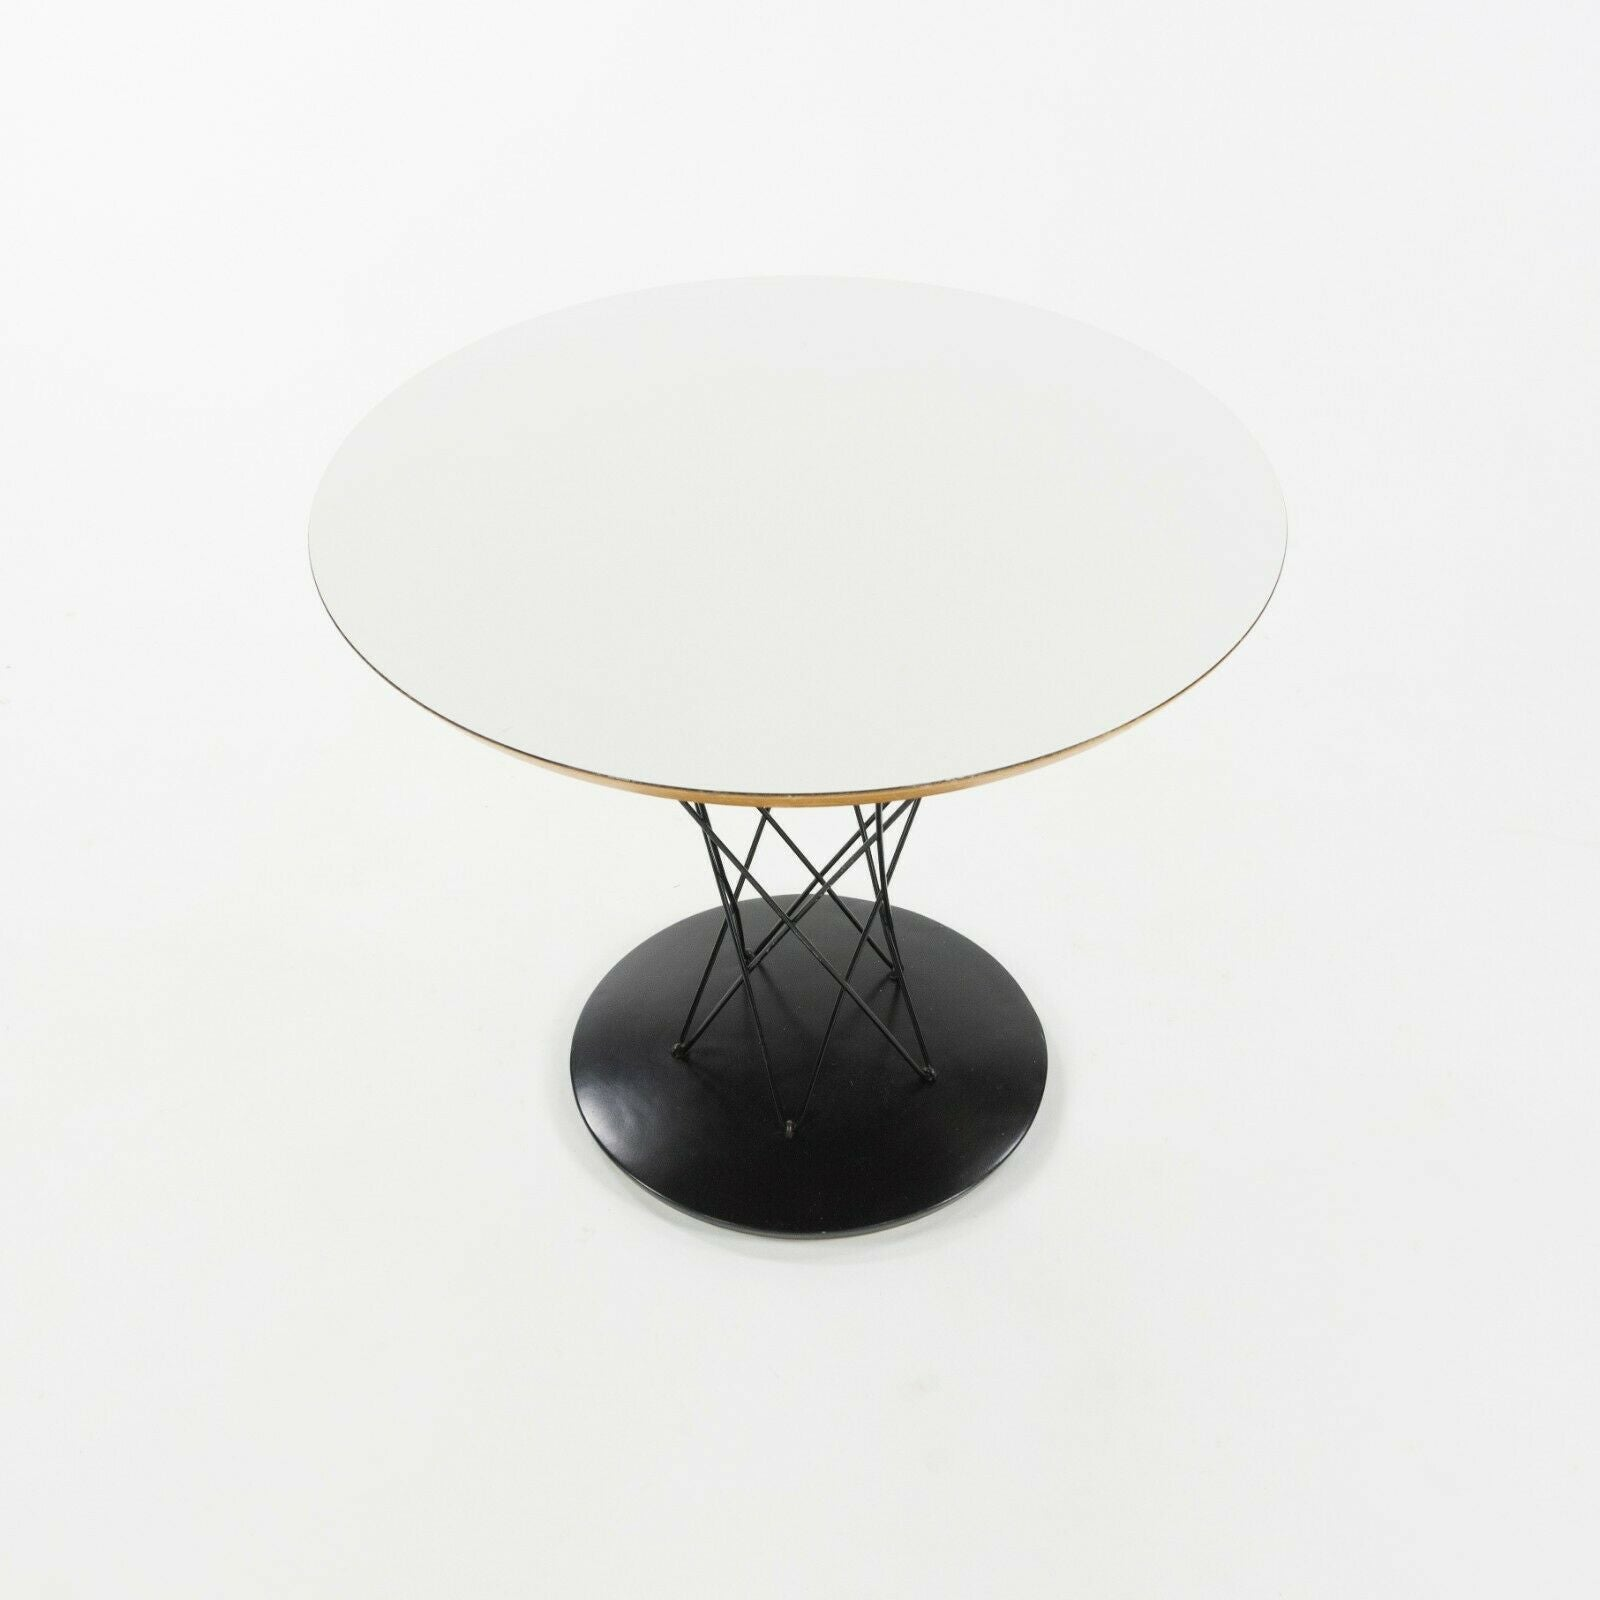 SOLD 1964 Isamu Noguchi for Knoll International Childs Cyclone or Side Table 24 in